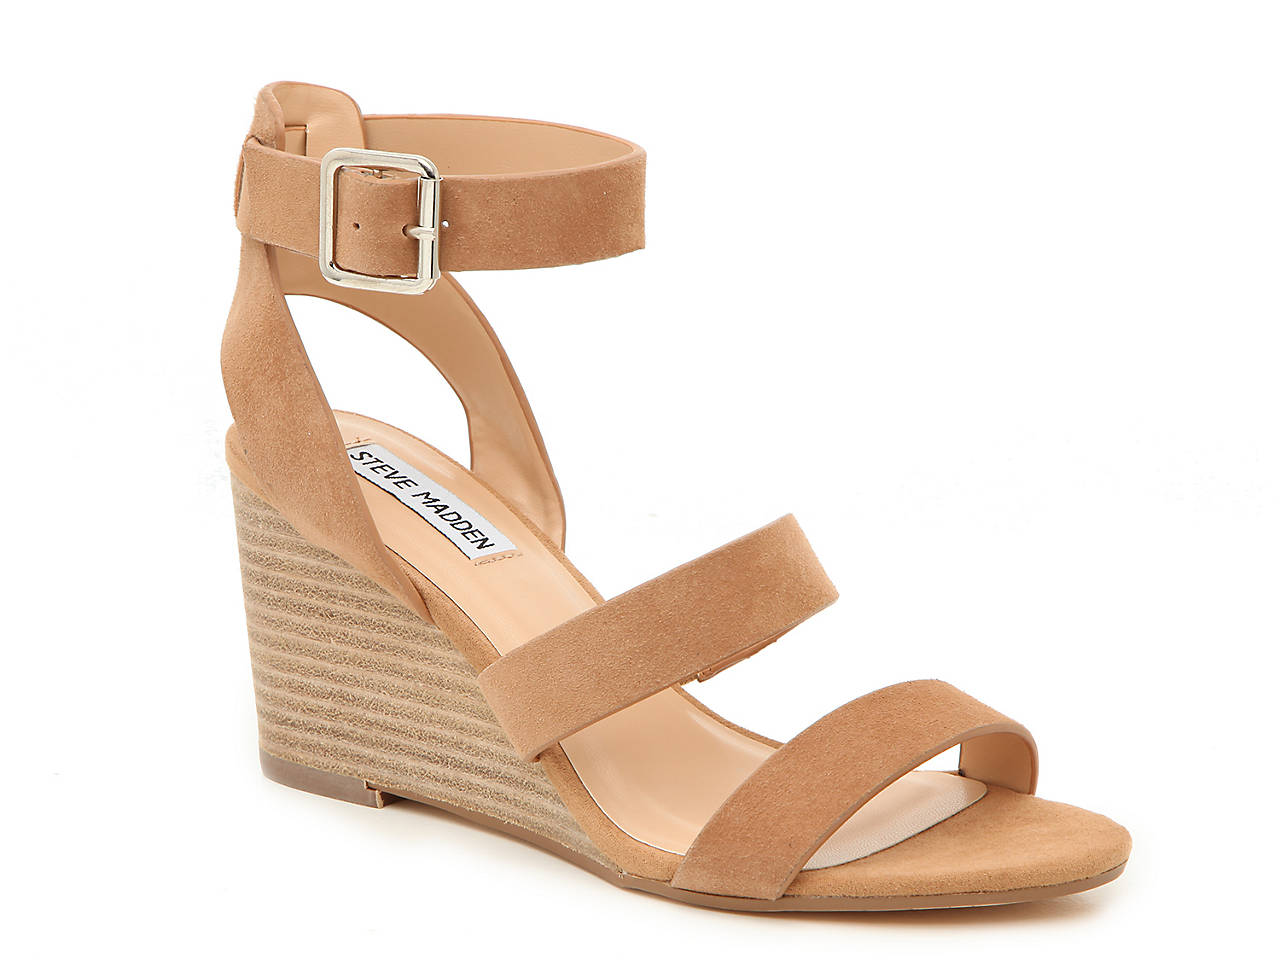 discount temperament shoes autumn shoes Steve Madden Caley Wedge Sandal Women's Shoes | DSW